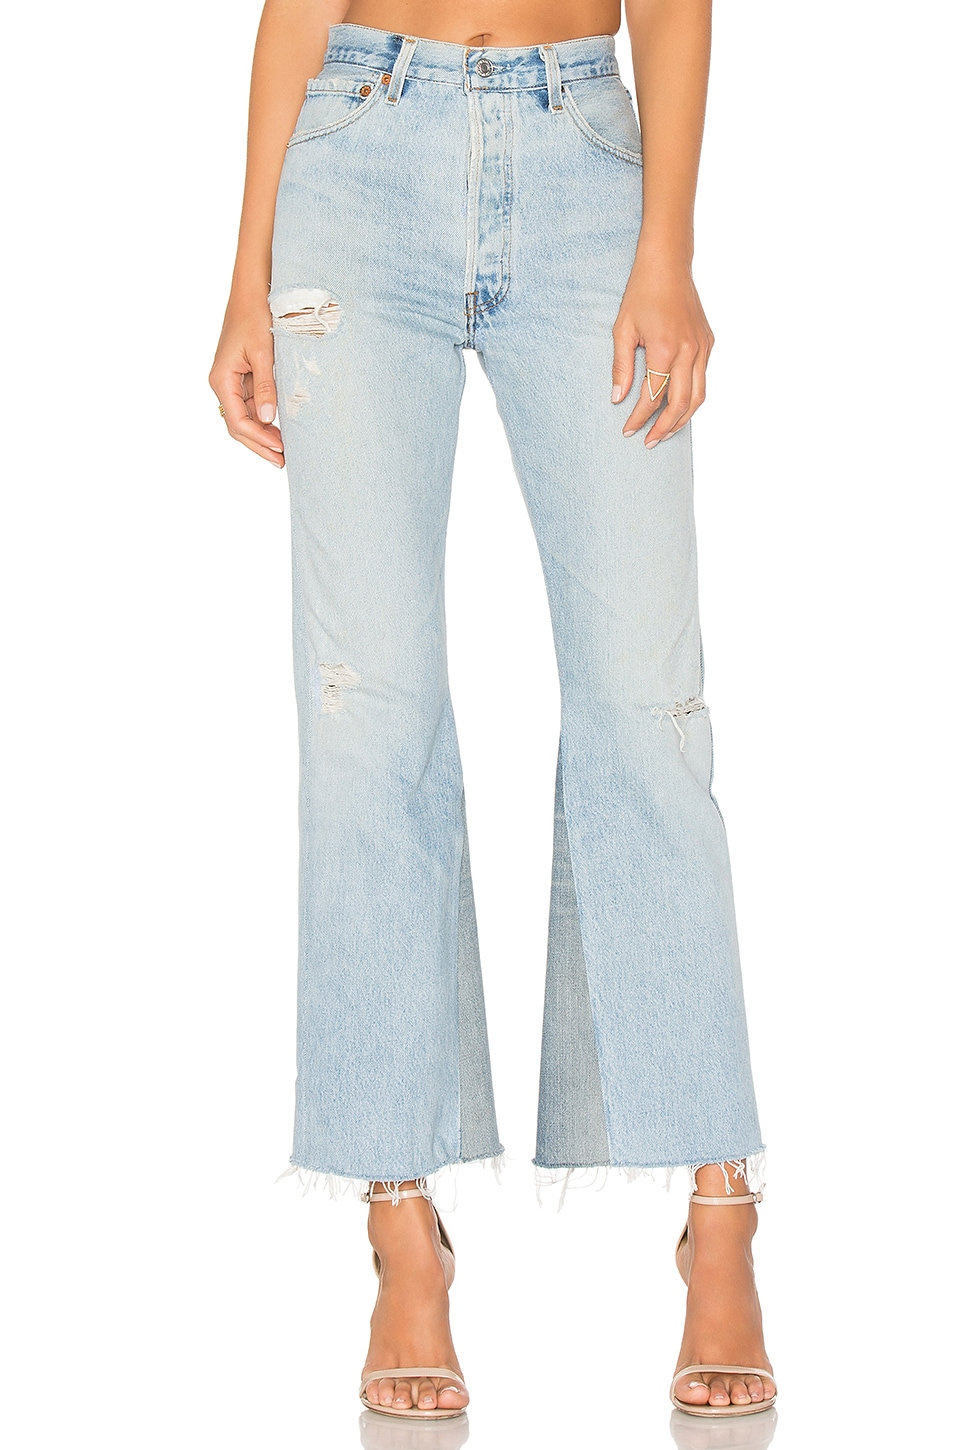 Levis Leandra High Rise Crop Flare